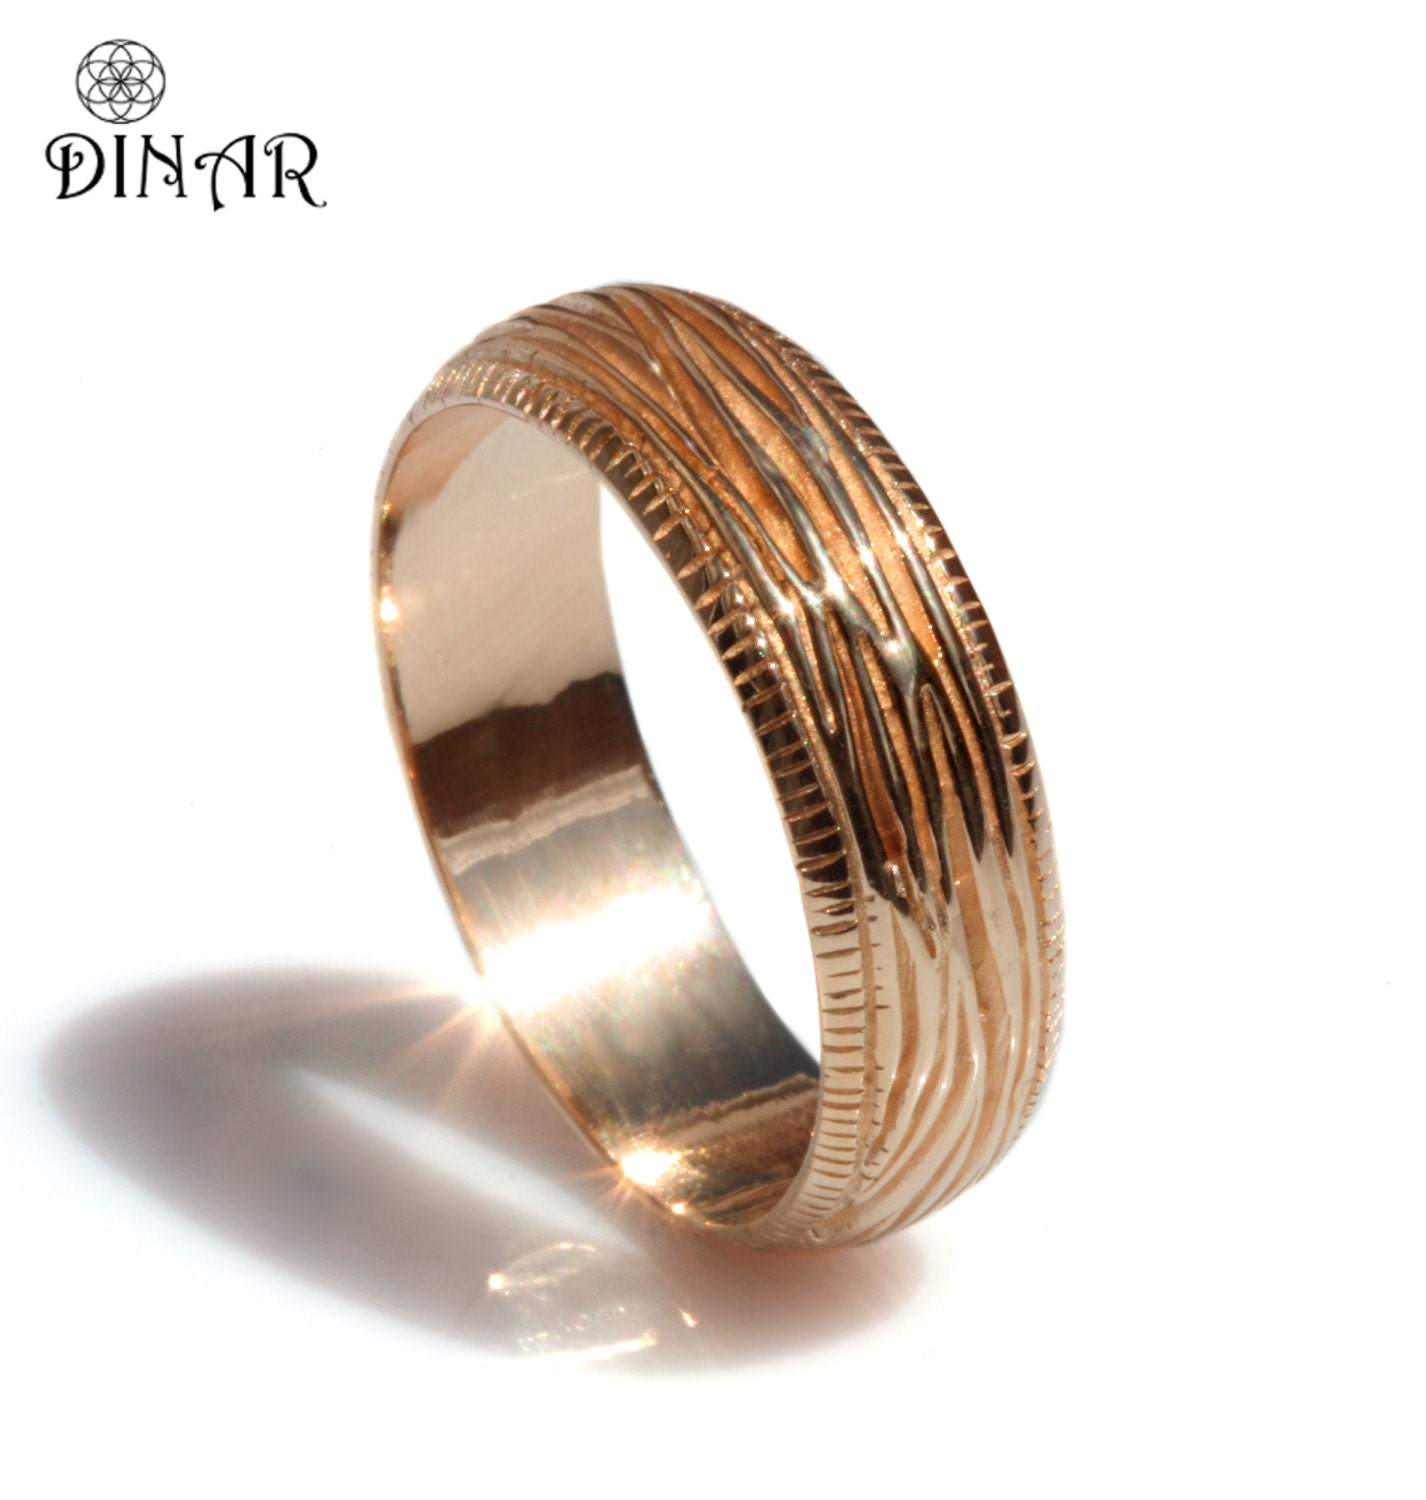 Woodgrain wedding band 14k rose Gold textured wedding band